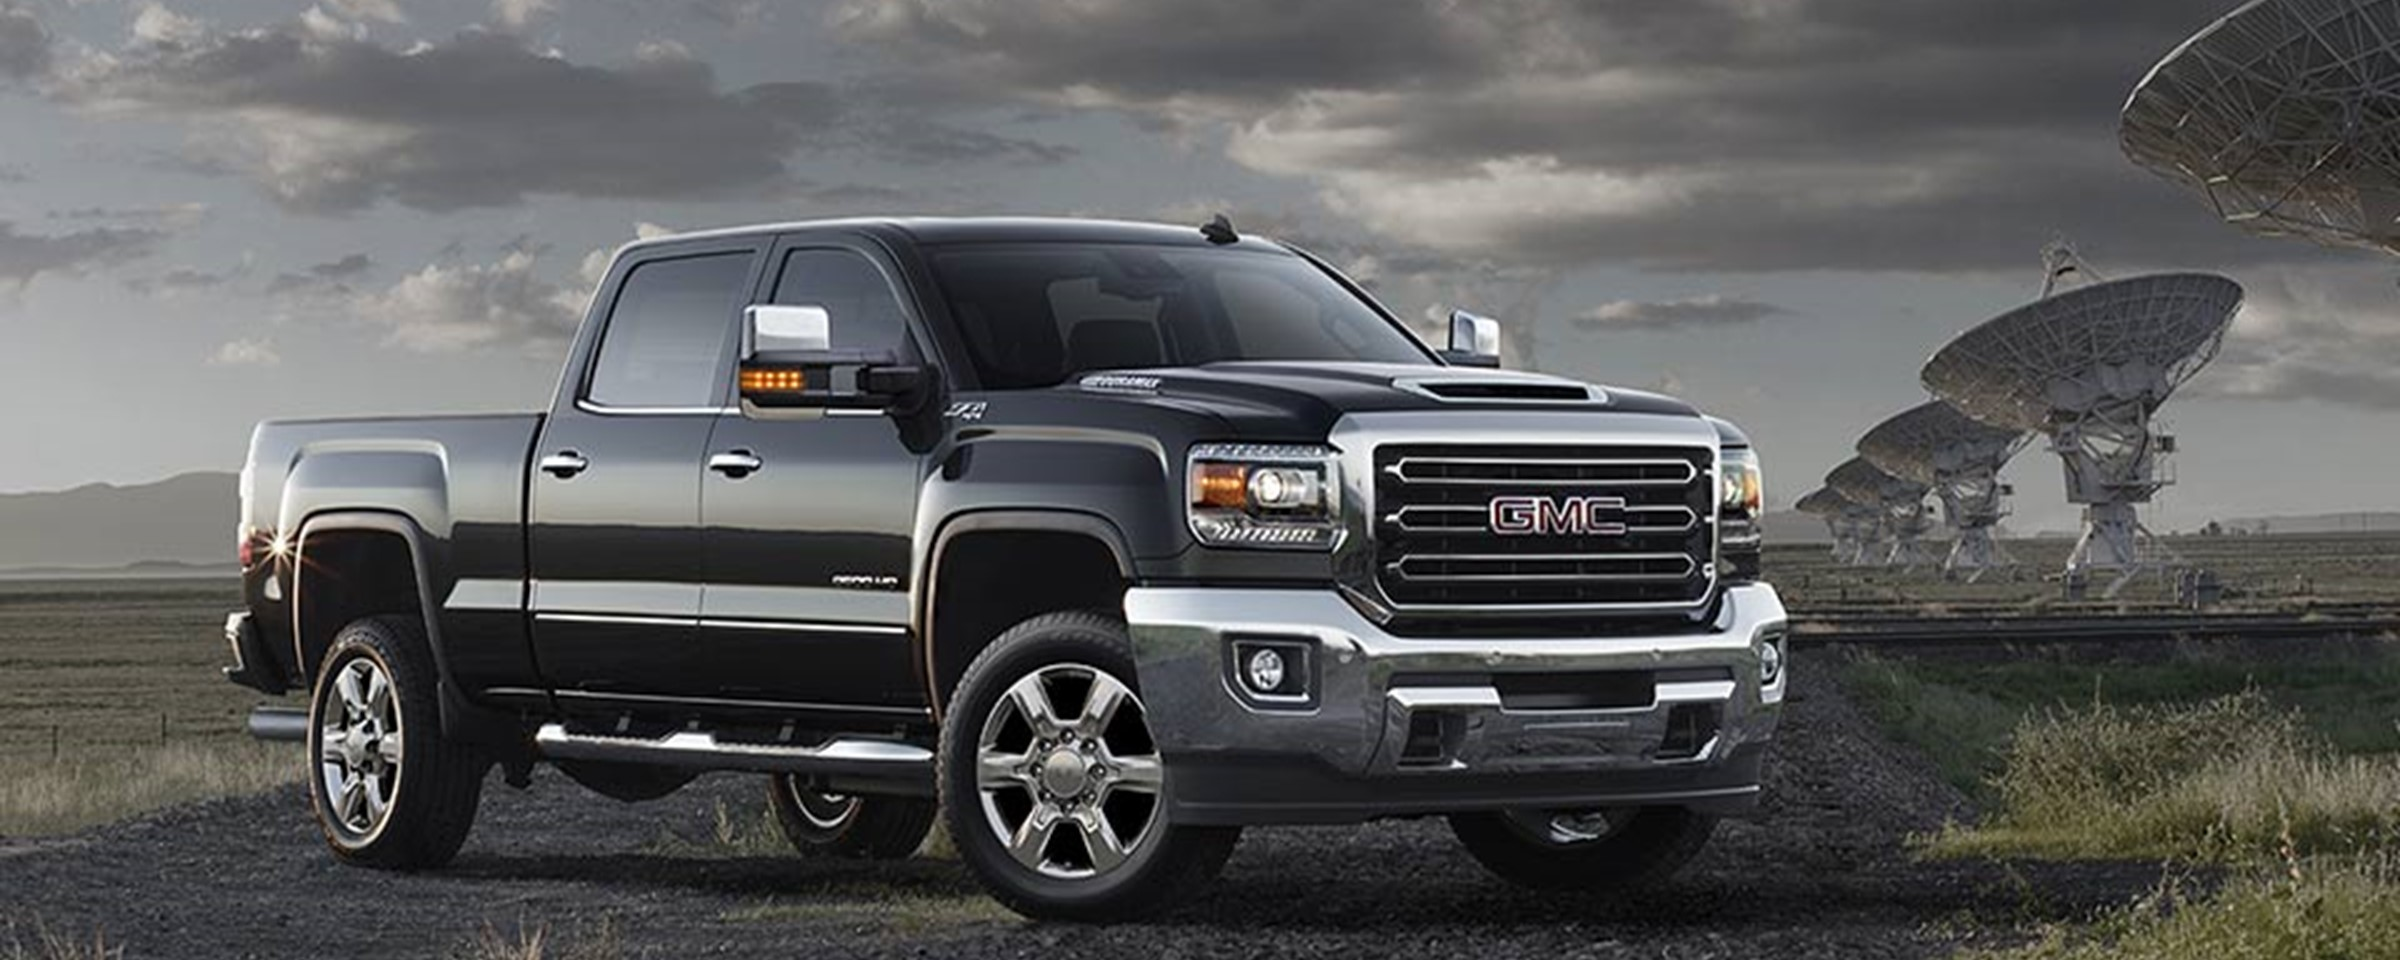 Baker Motor Company >> Six Must-Have Accessories for Your GMC Sierra 2500 HD - Baker Motor Company